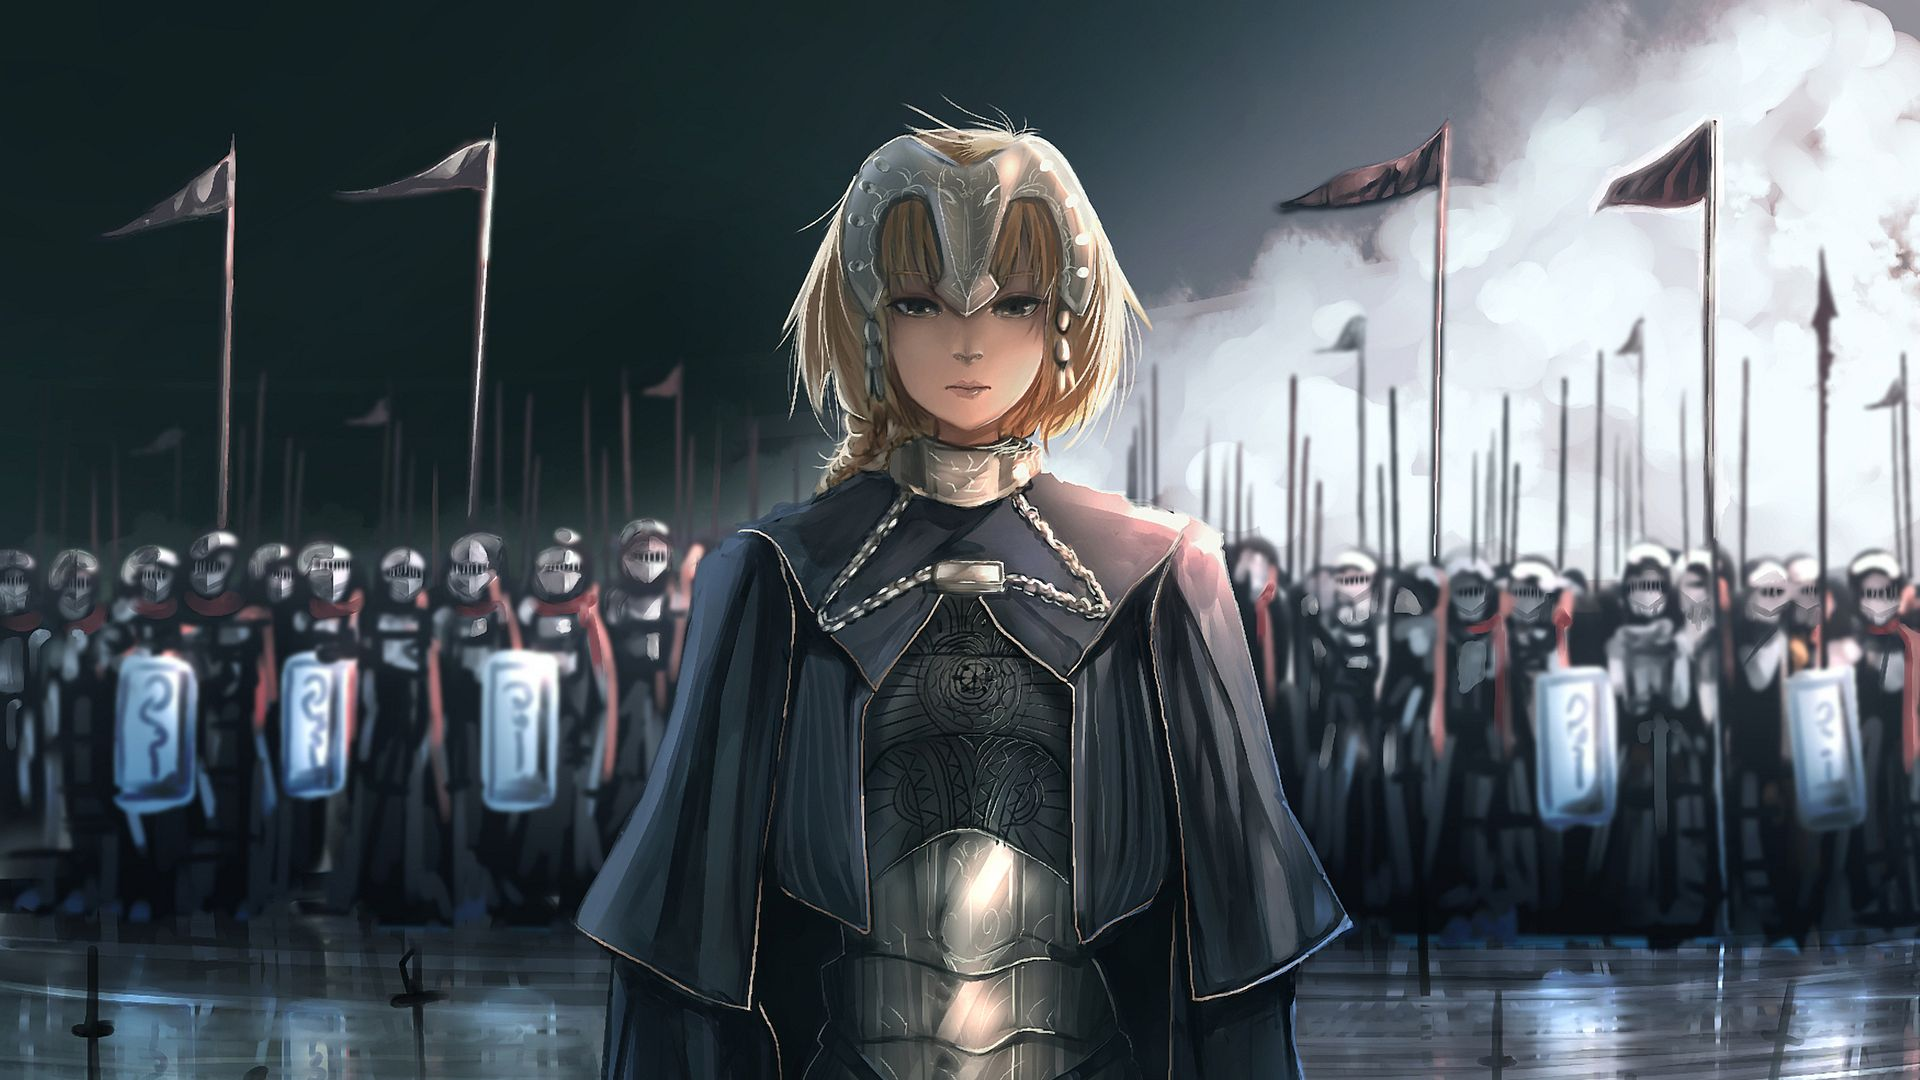 Wallpaper Ruler, Fate/Apocrypha, anime girl, army